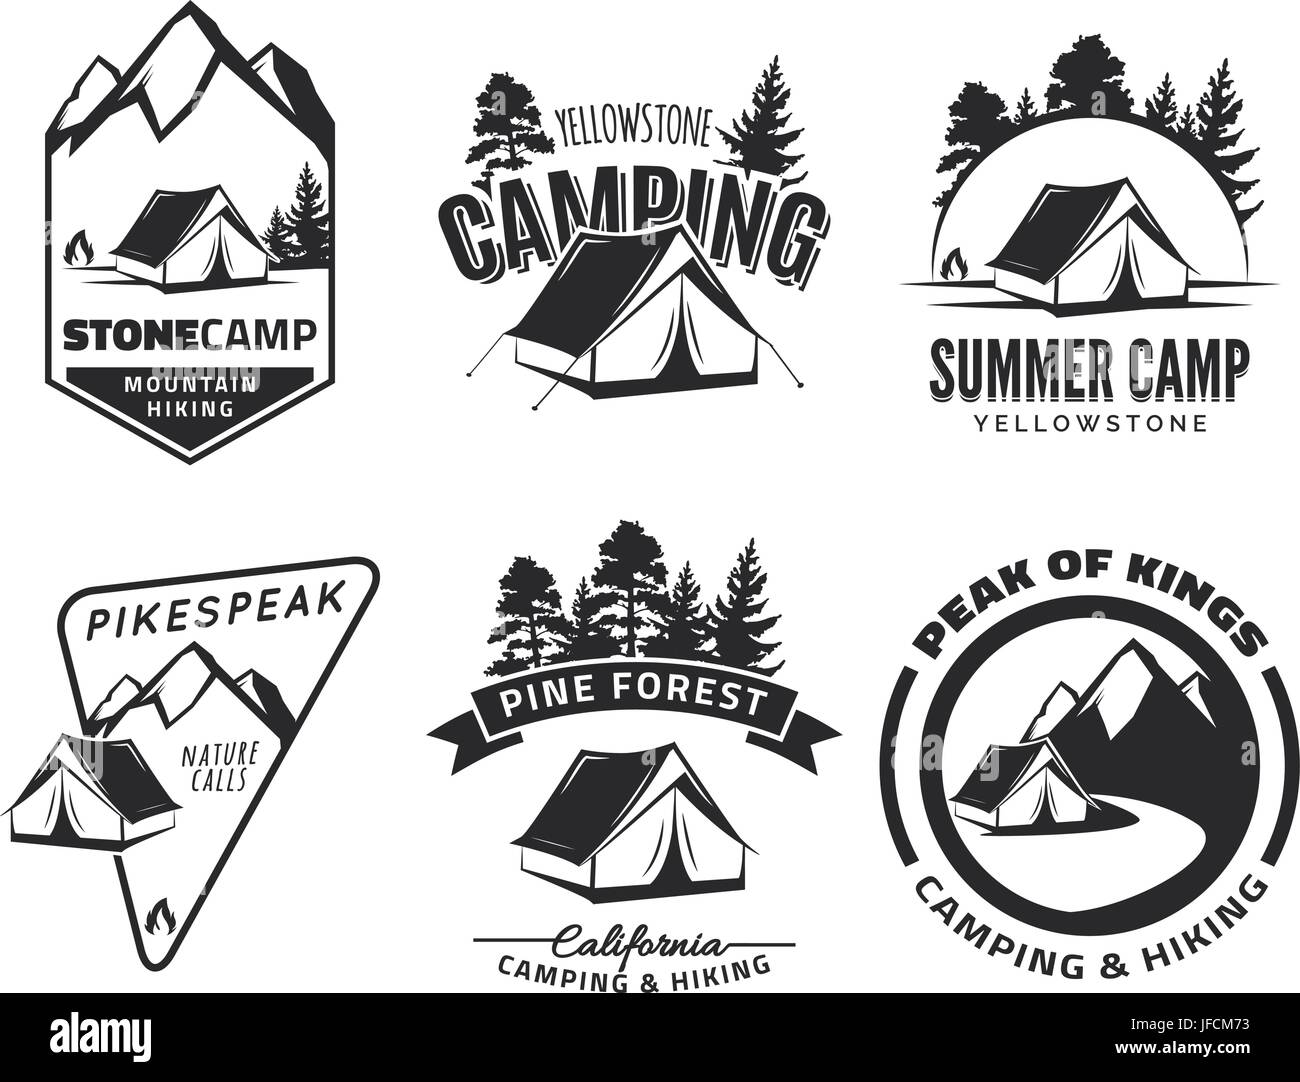 Set of vintage camping and outdoor adventure emblems, logos and badges. Tent in forest or mountains. Camping equipment. - Stock Image